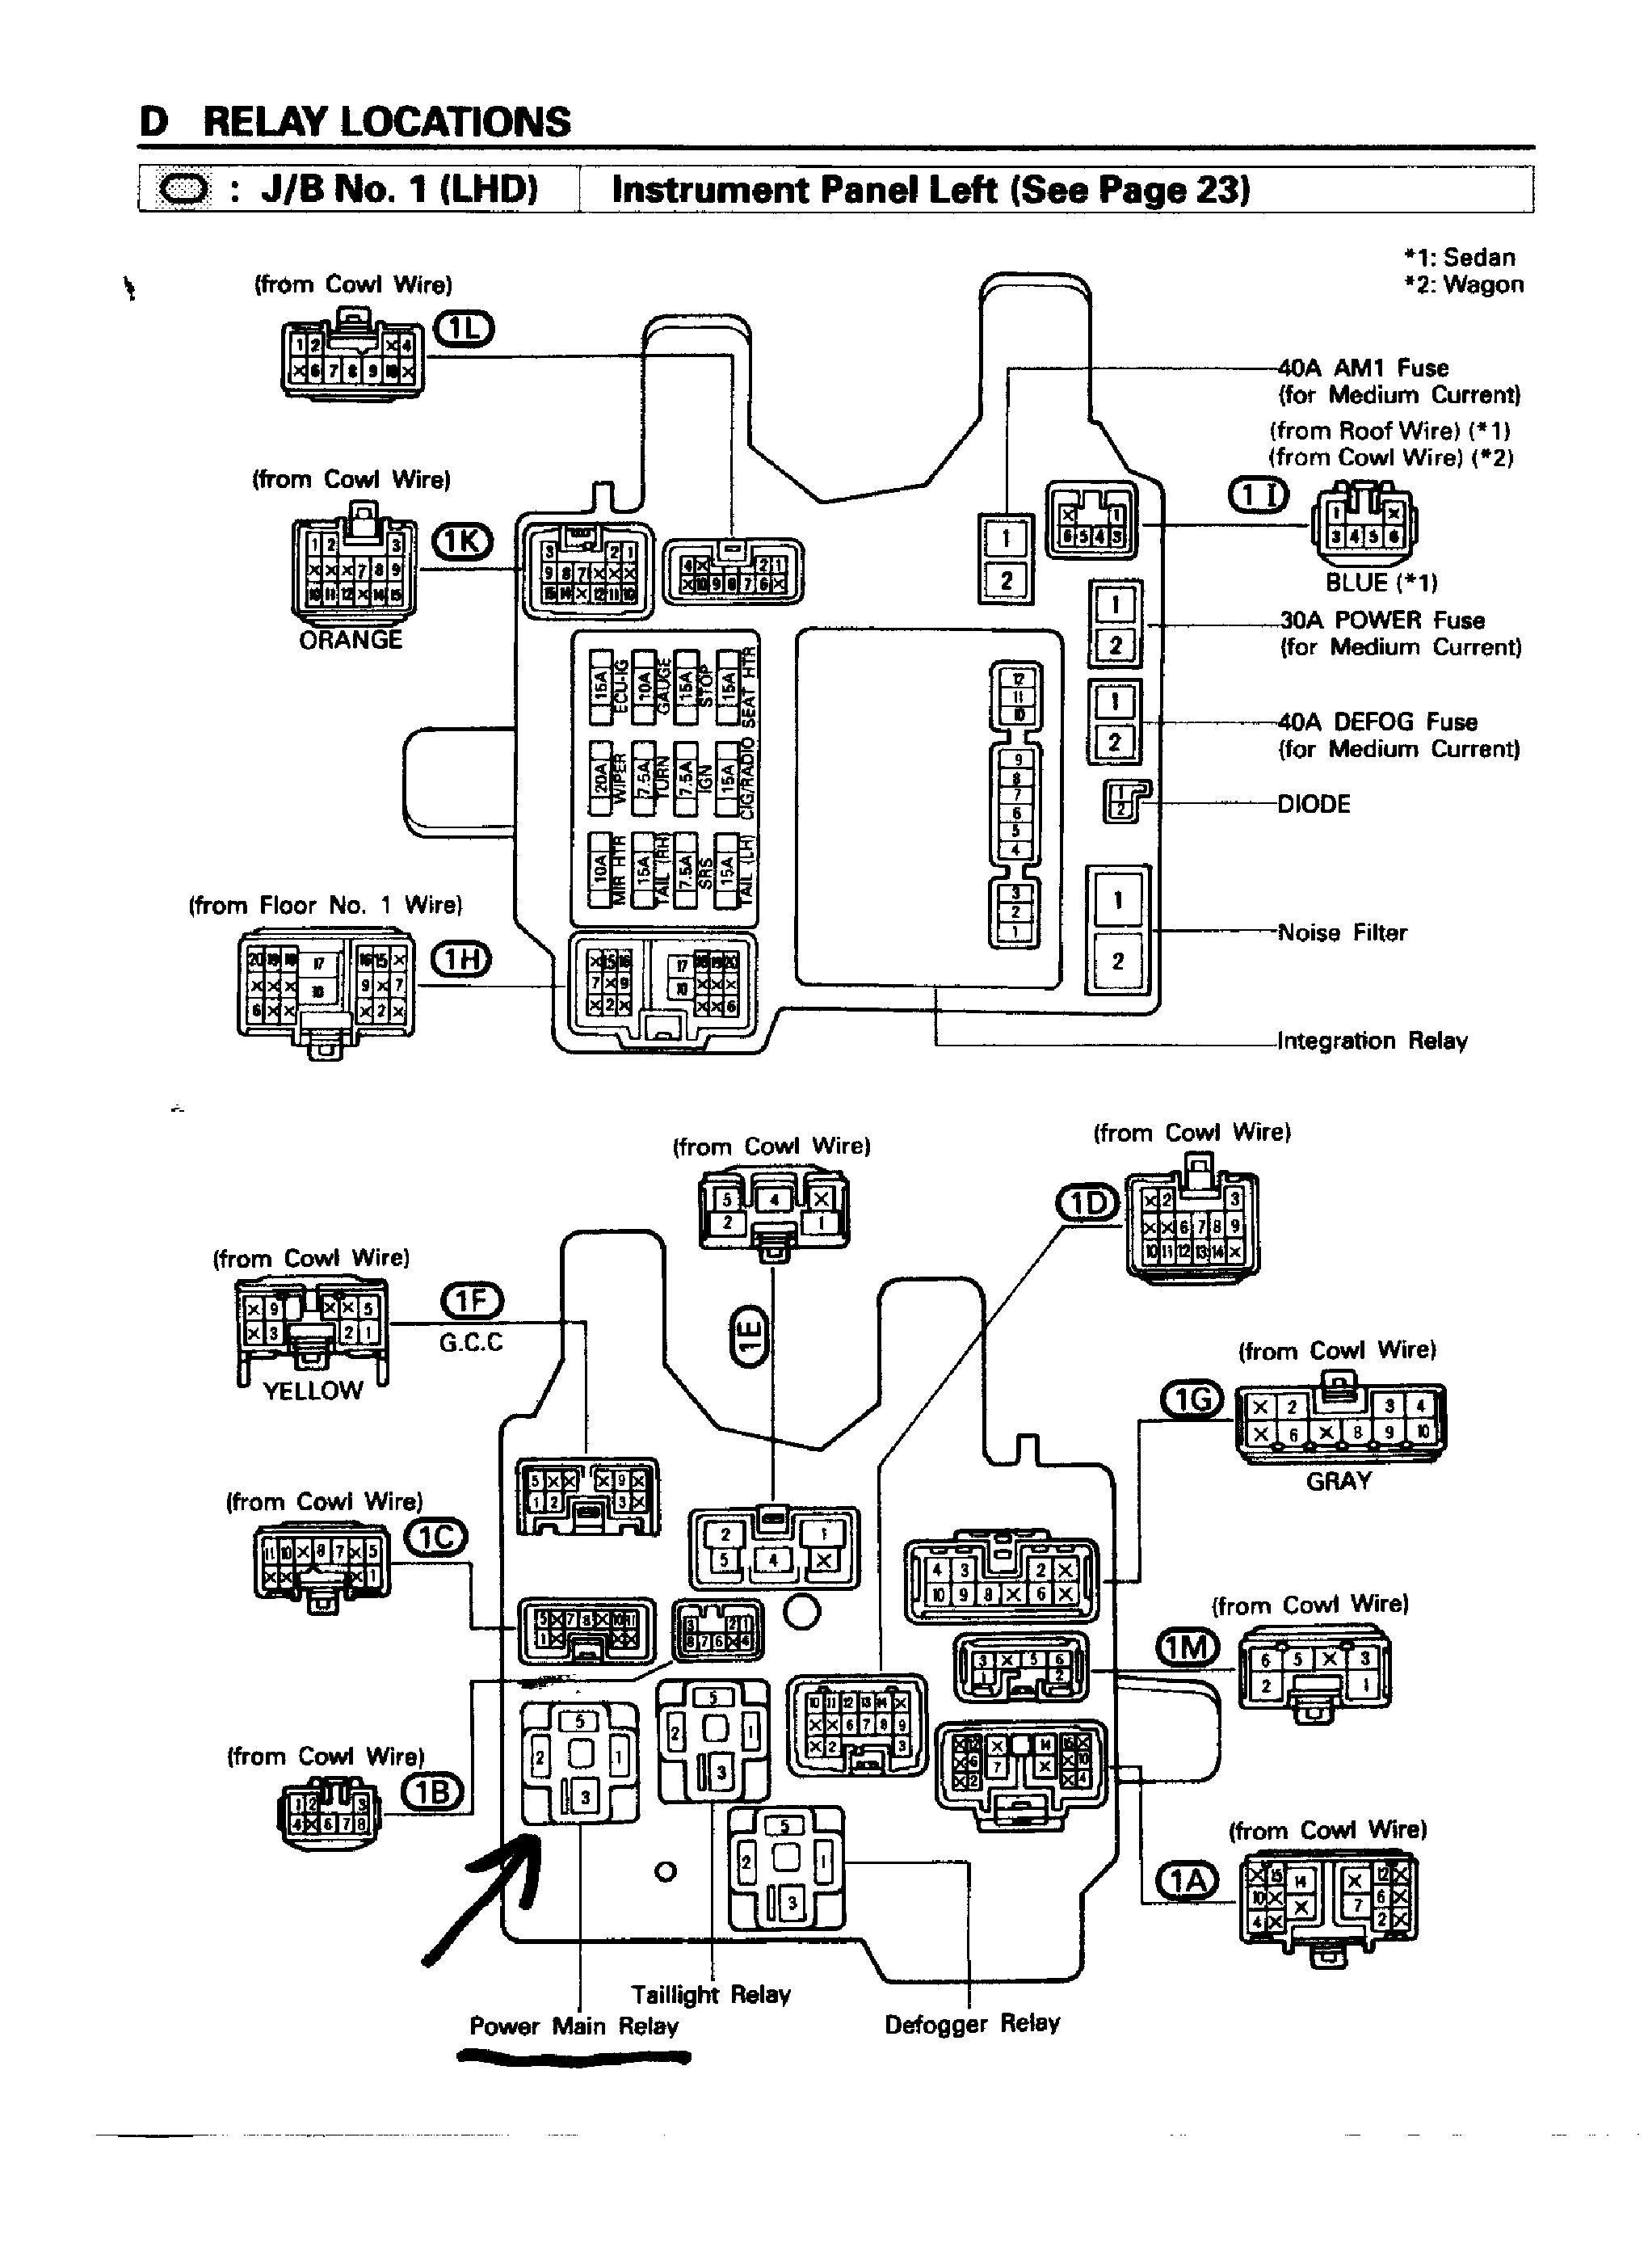 toyota 4runner fuse box diagram vdFAAjC fuse box diagram for 1996 toyota camry fuse wiring diagrams  at soozxer.org